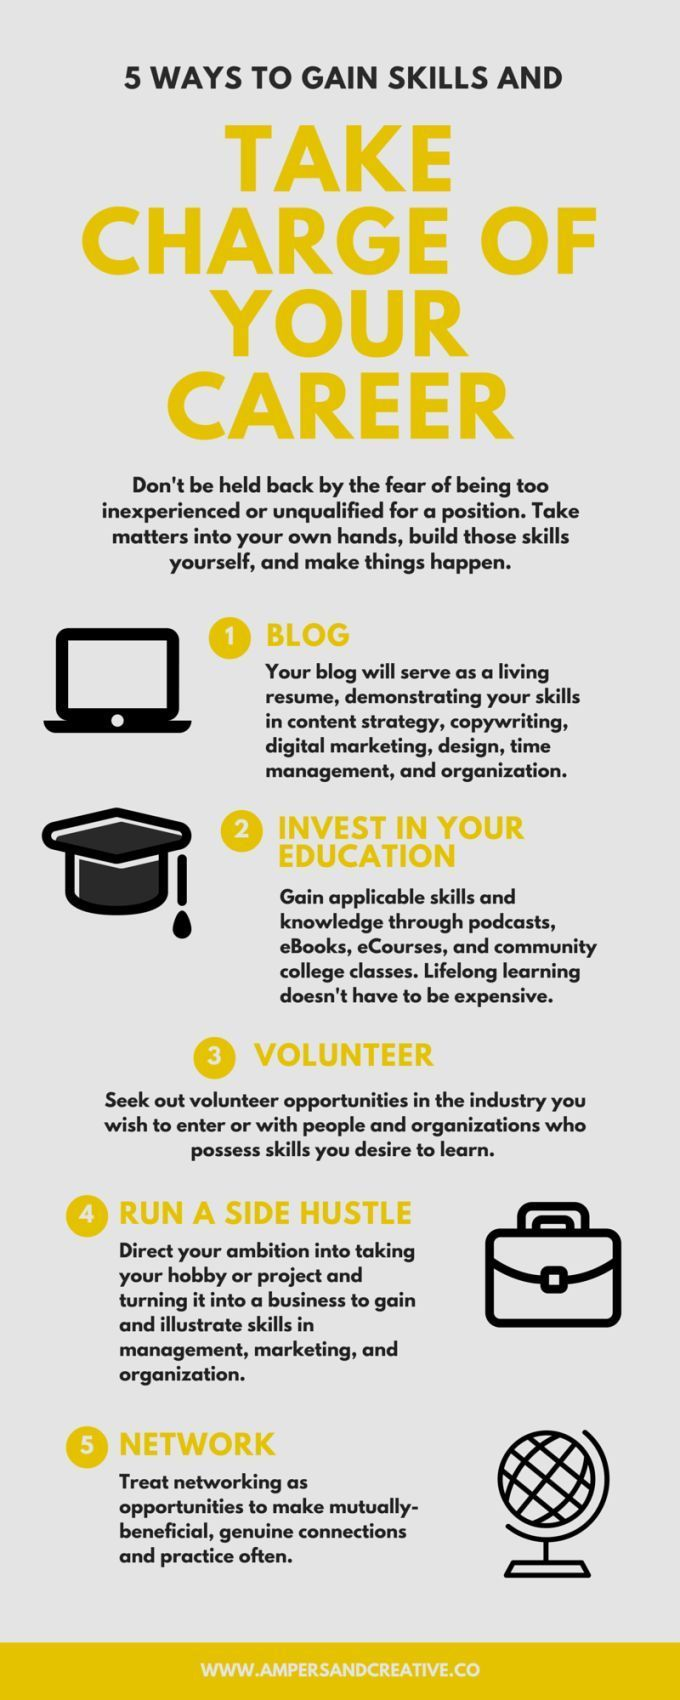 5 Ways To Gain Skills And Take Charge Of Your Career